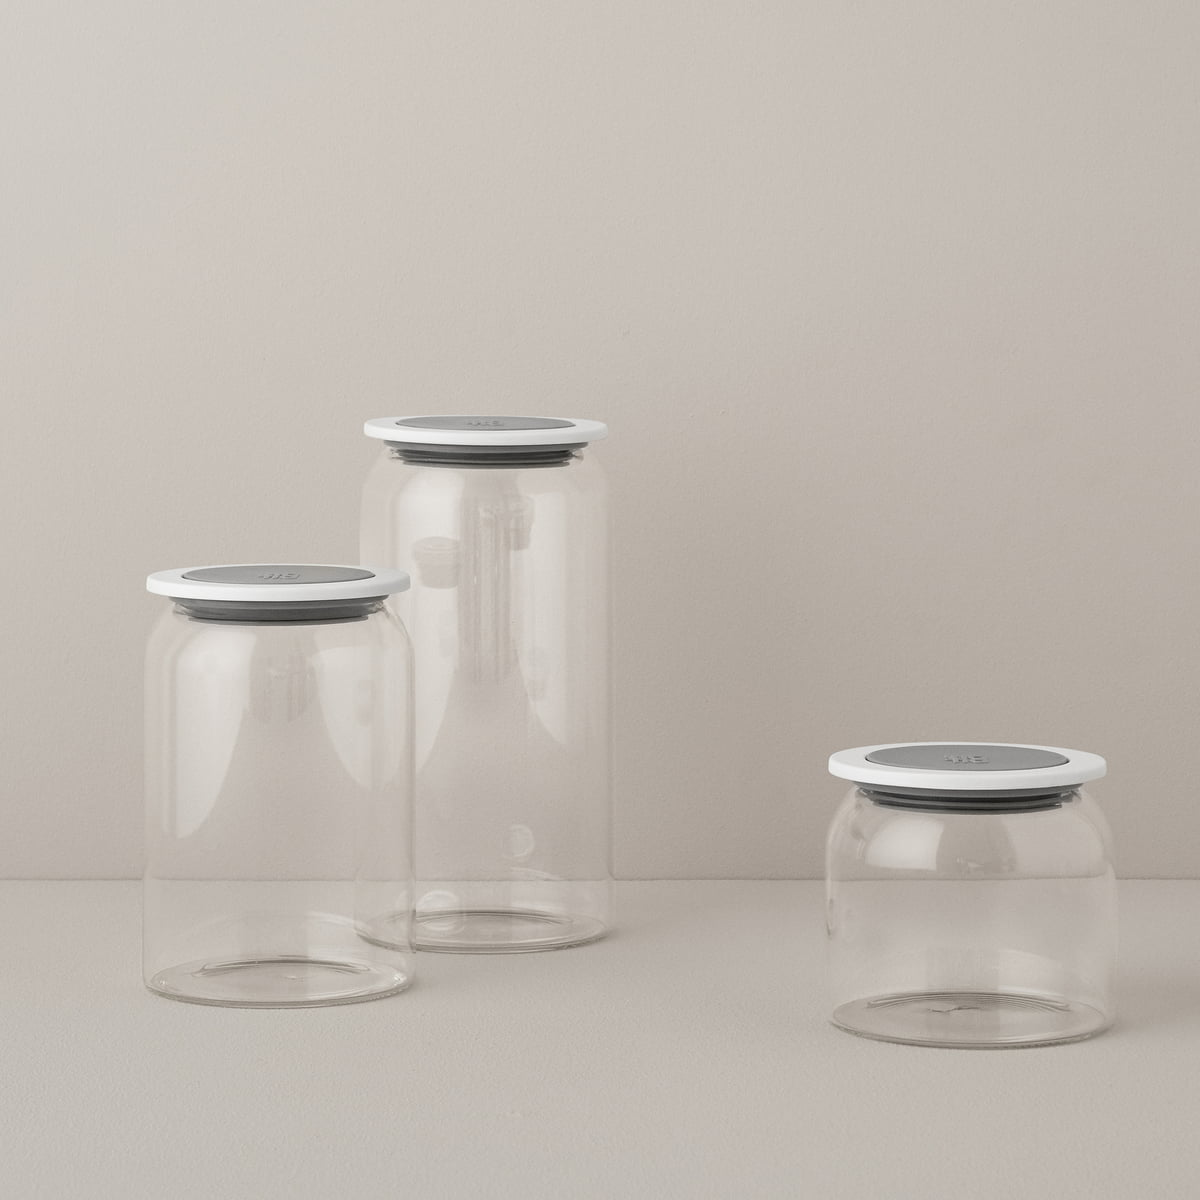 goodies aufbewahrungsglas von rig tig by stelton. Black Bedroom Furniture Sets. Home Design Ideas